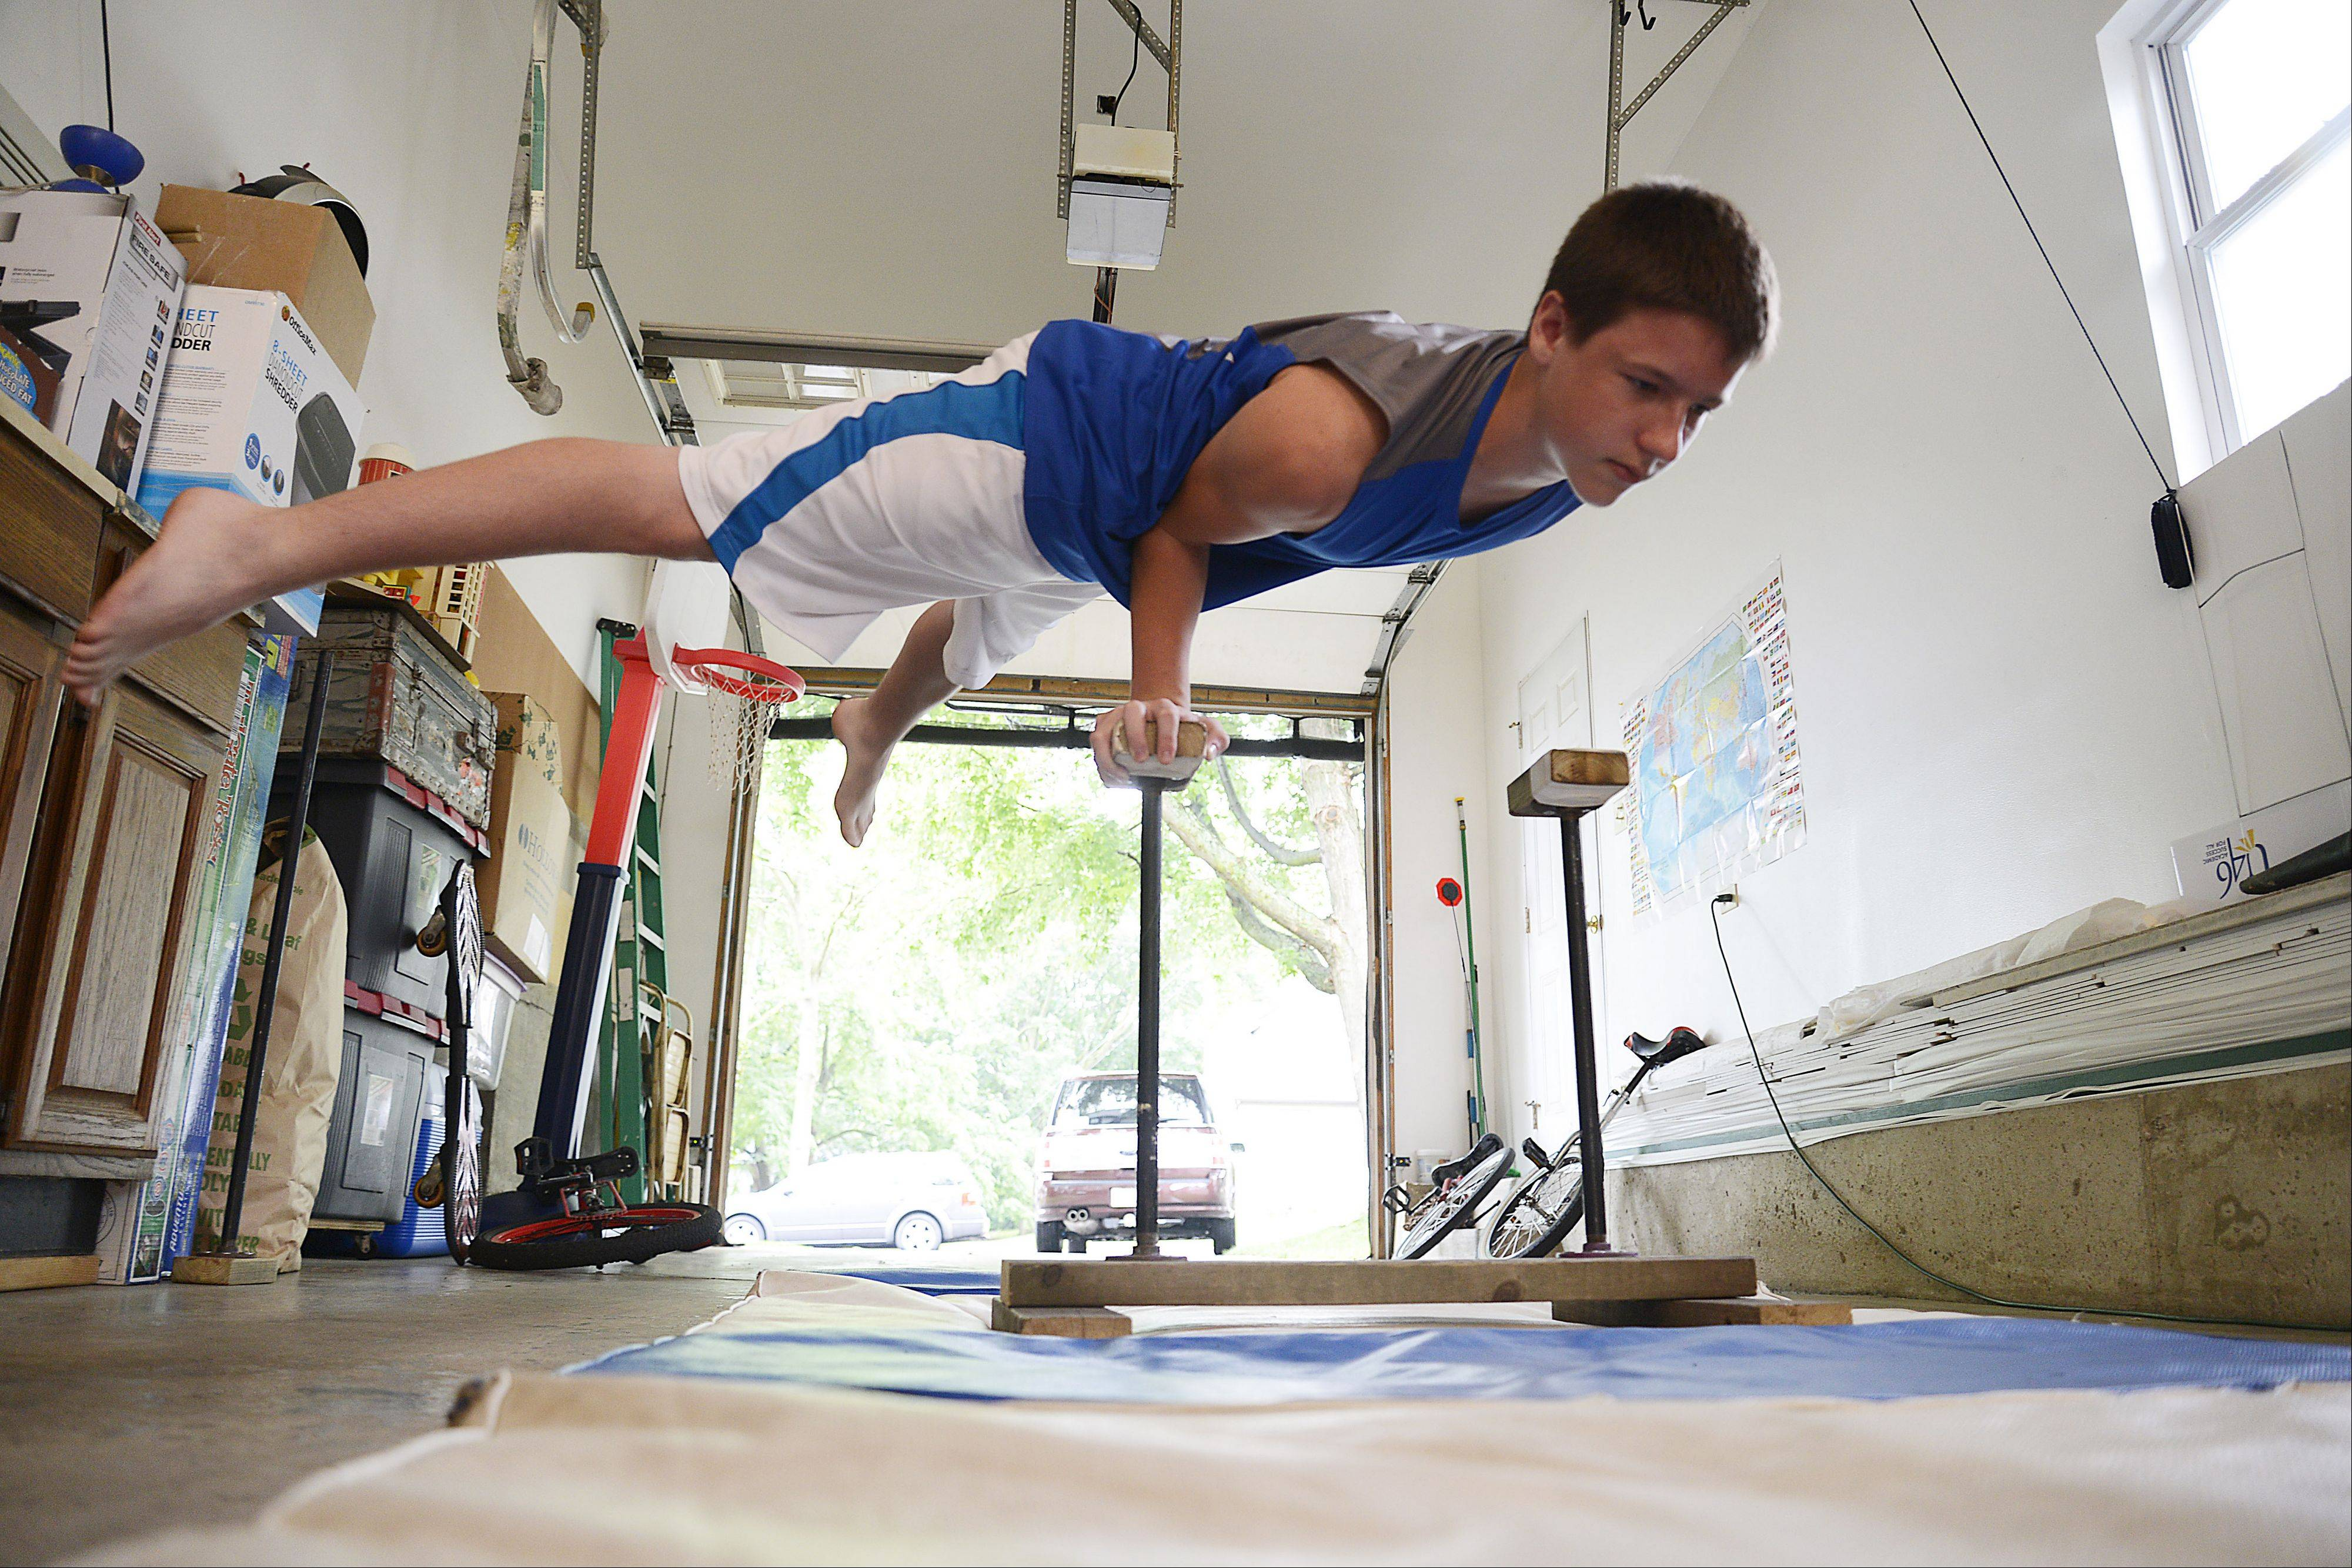 Nick Balk, 14, balances on one hand on 18-inch high balancing canes he made out of leftover lumber and pipes. He prefers strength tricks while sister Katie, 16, prefers balancing and flexibility tricks.